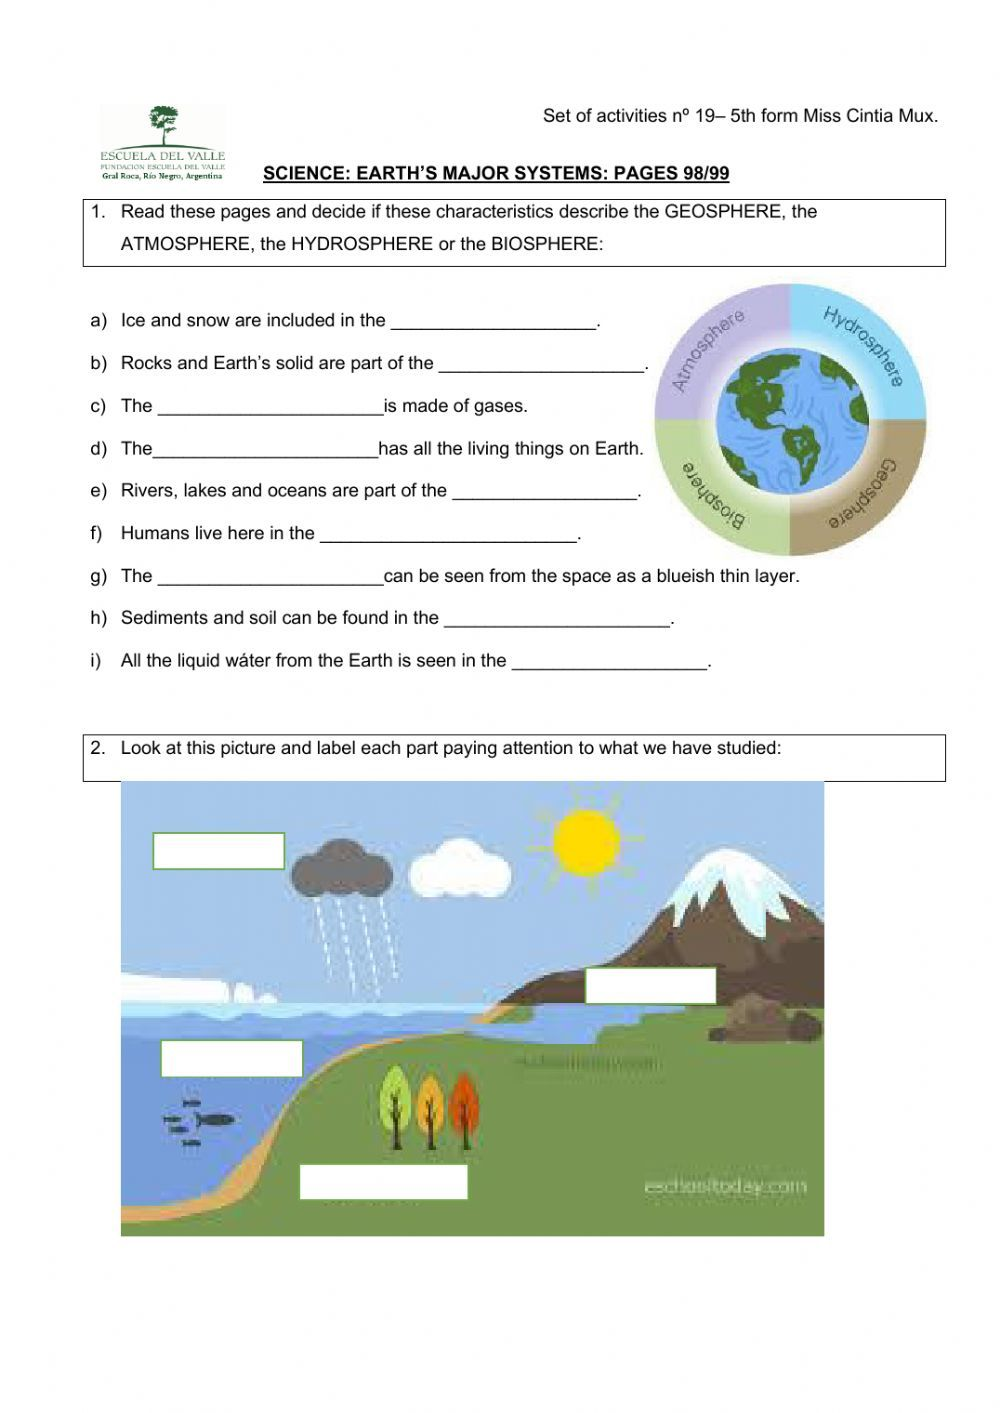 Four Earth S Systems Online Worksheet For 5to Bilingue You Can Do The Exercises Online Or Download T In 2020 Earth Science Activities Earth Science Science Activities